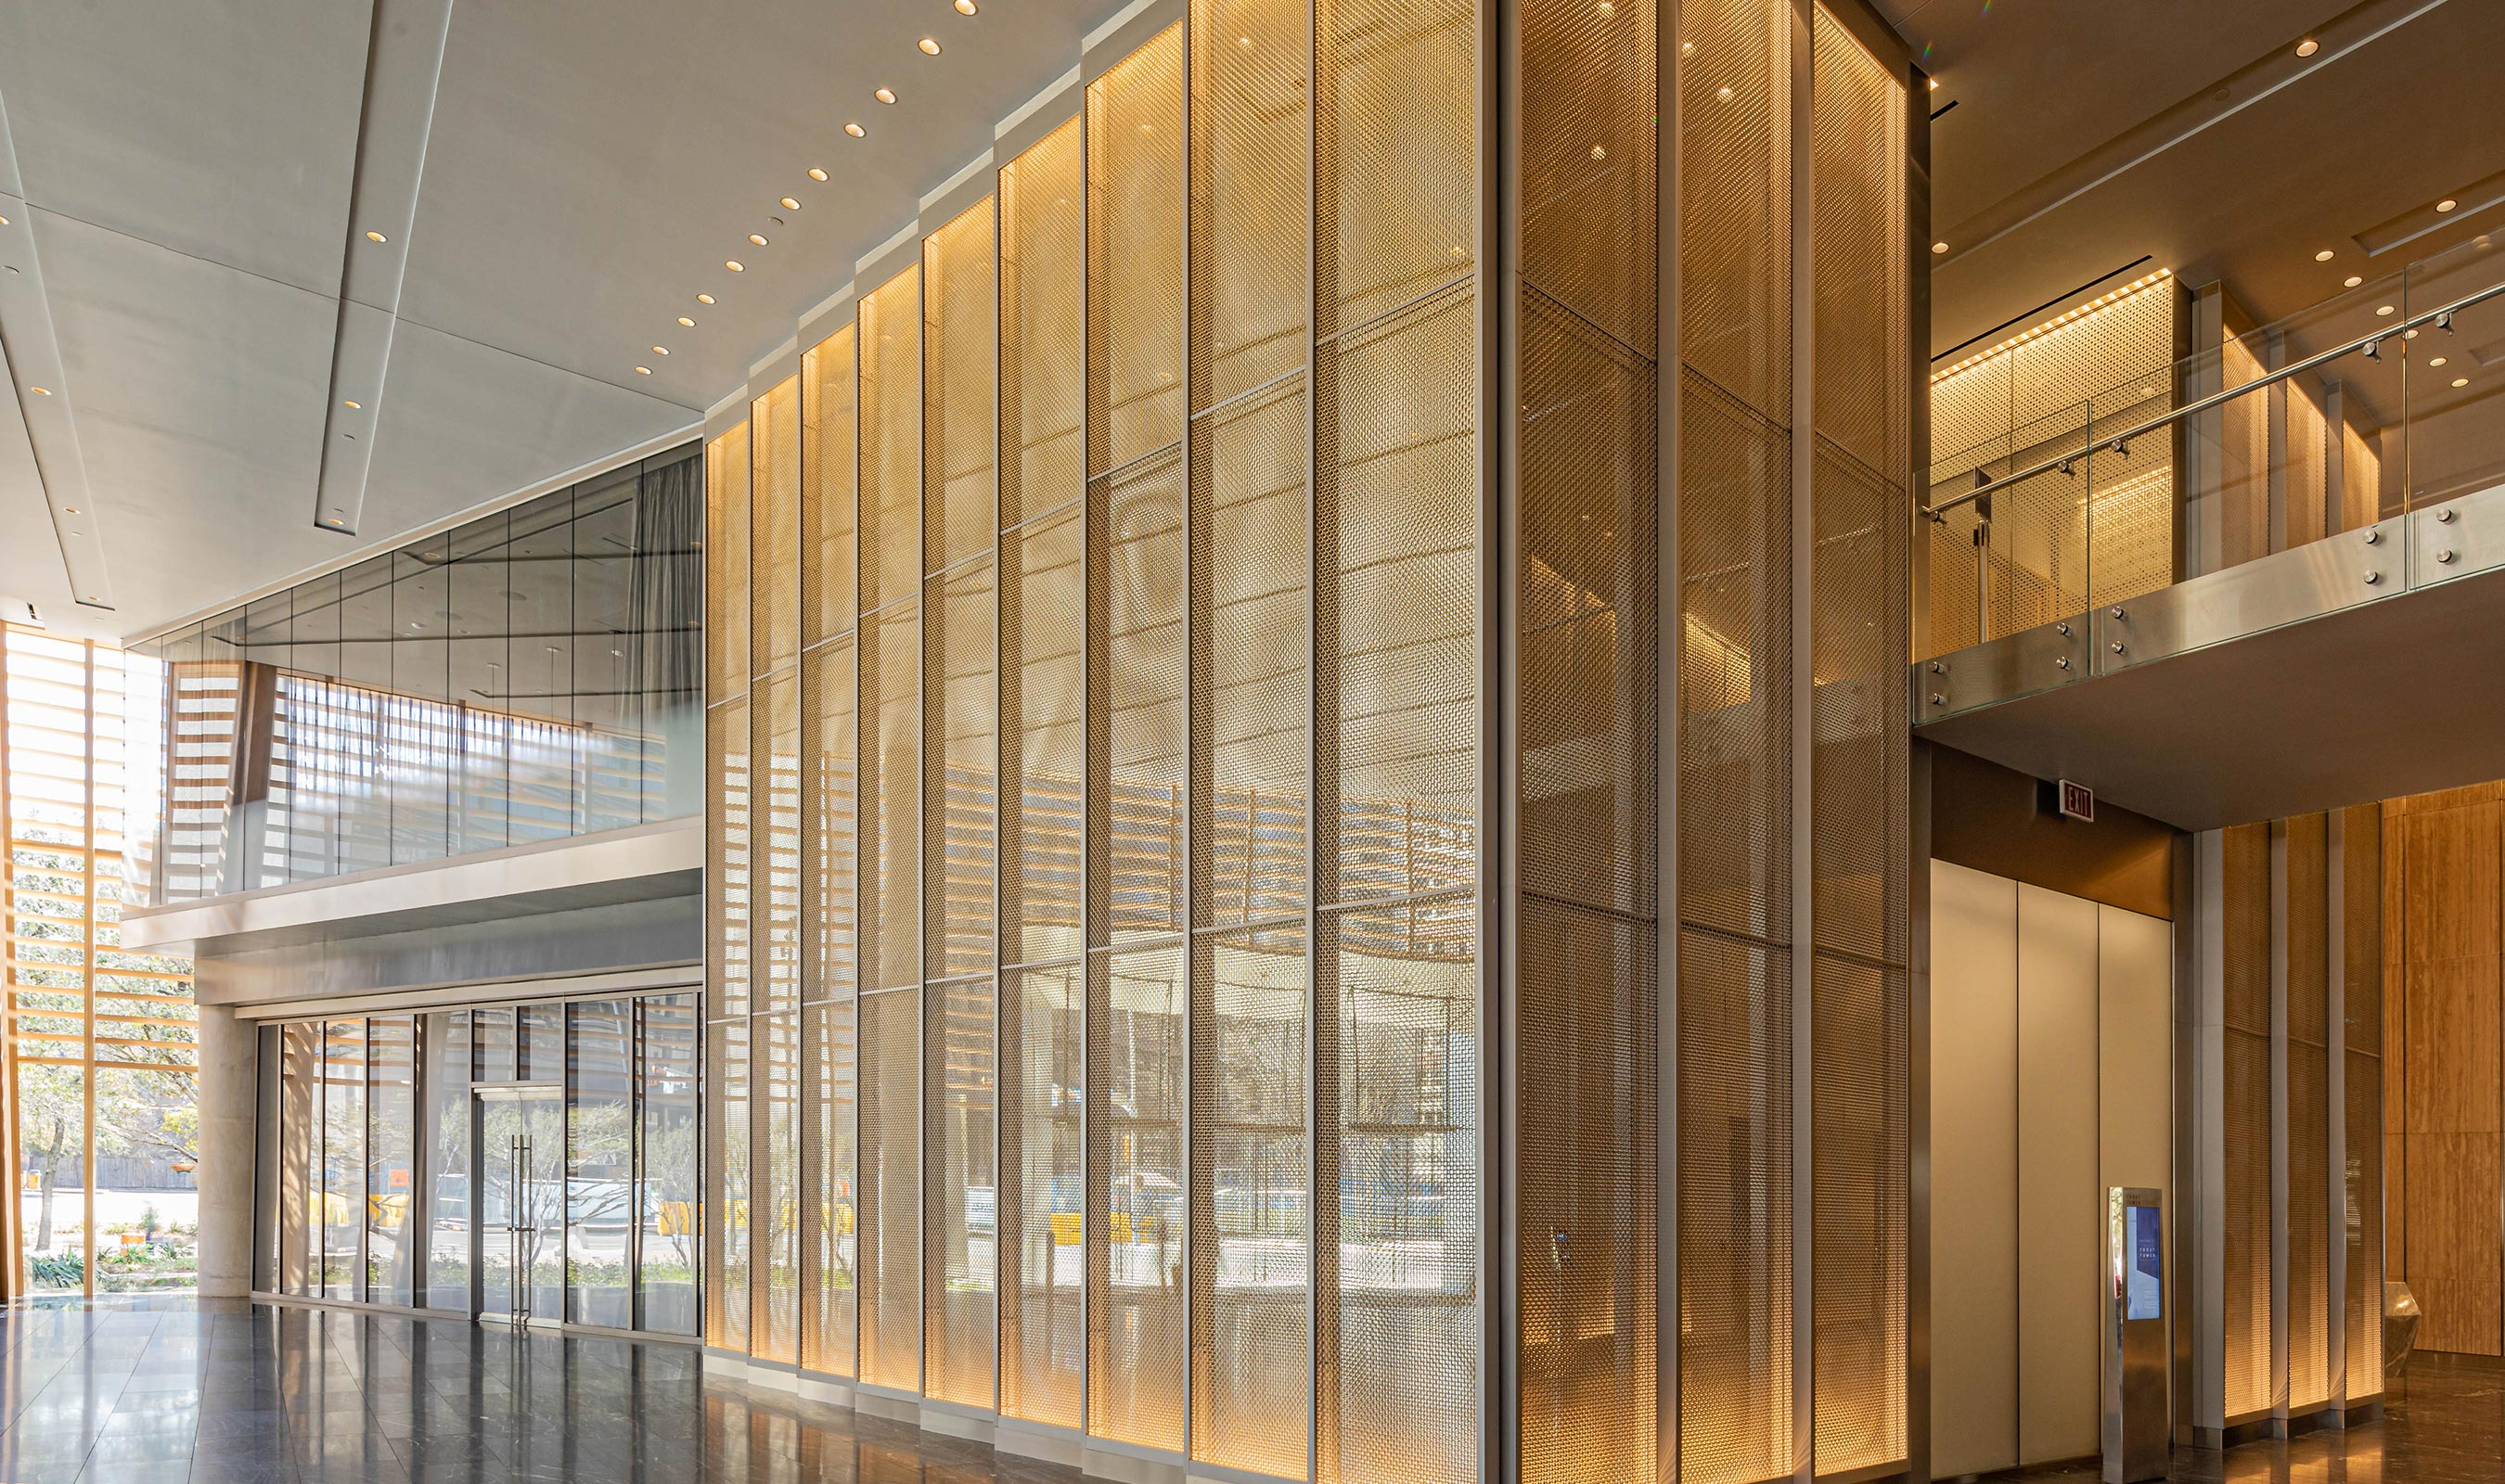 Banker Wire's M22-80 in stainless steel and brass clad against mirrors in the Frost Bank Tower lobby creates a beautiful sparkle and visual interest.